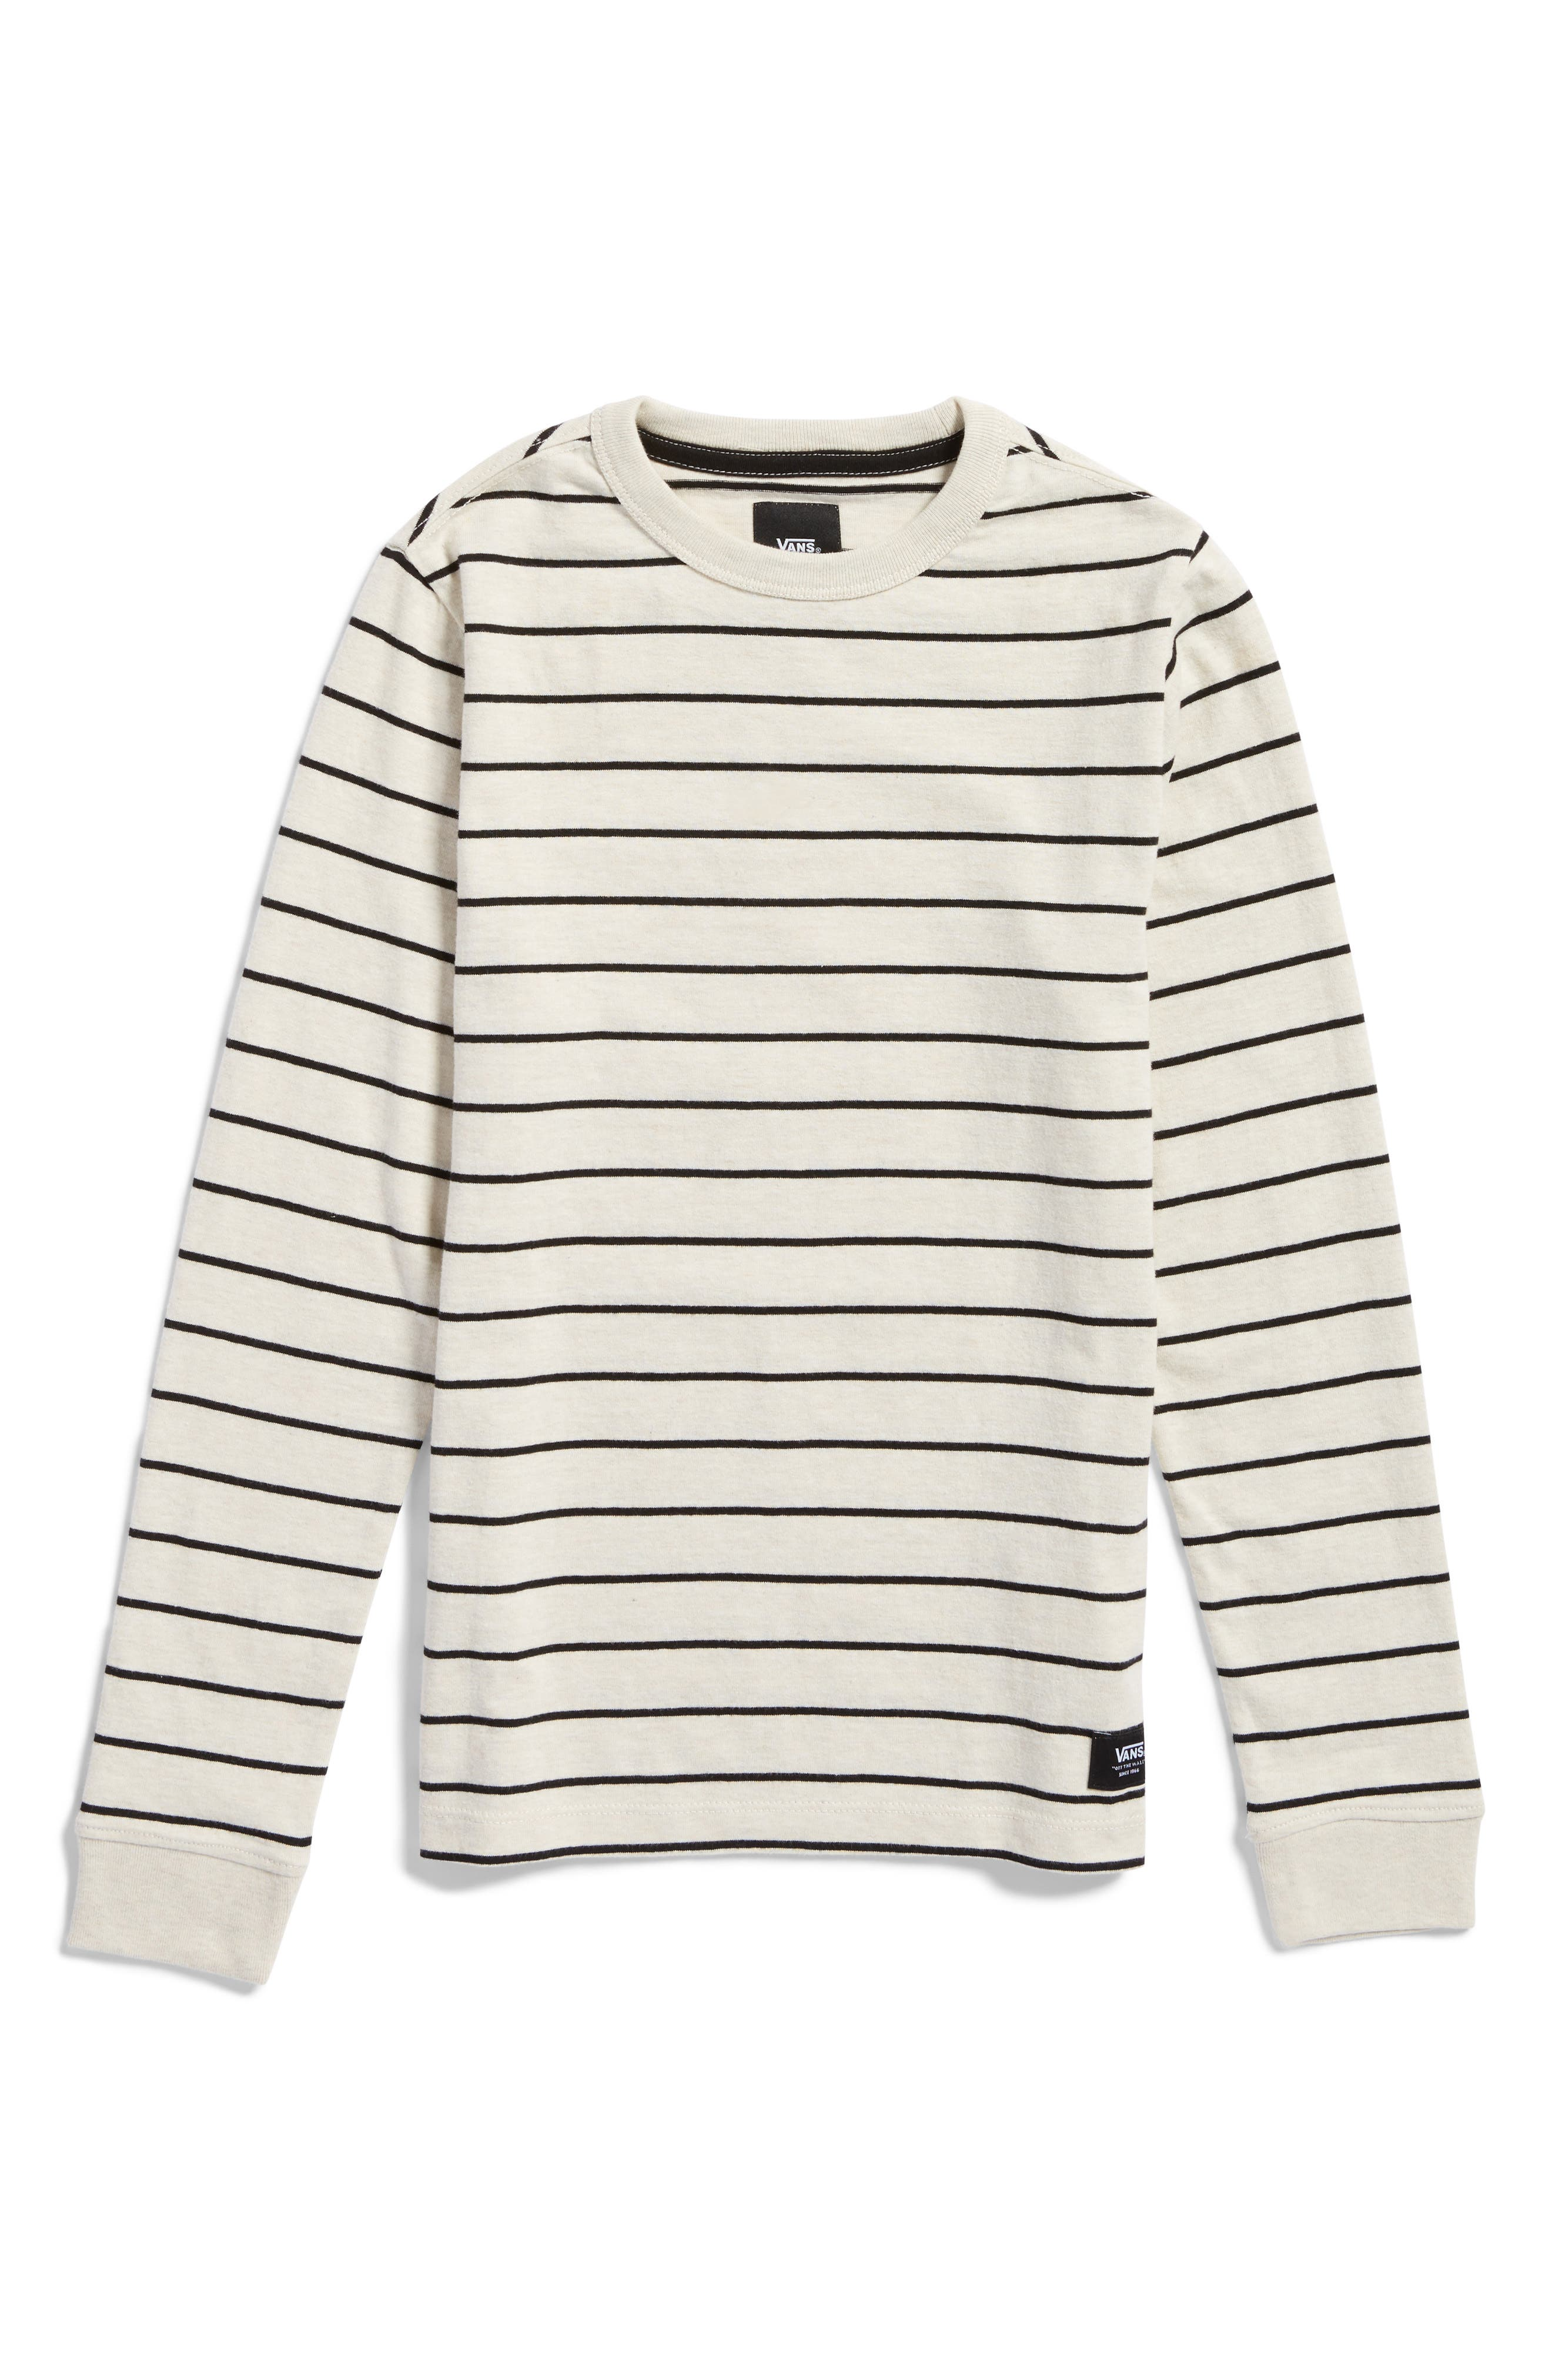 Vans Milton Stripe Long Sleeve T-Shirt (Big Boys)